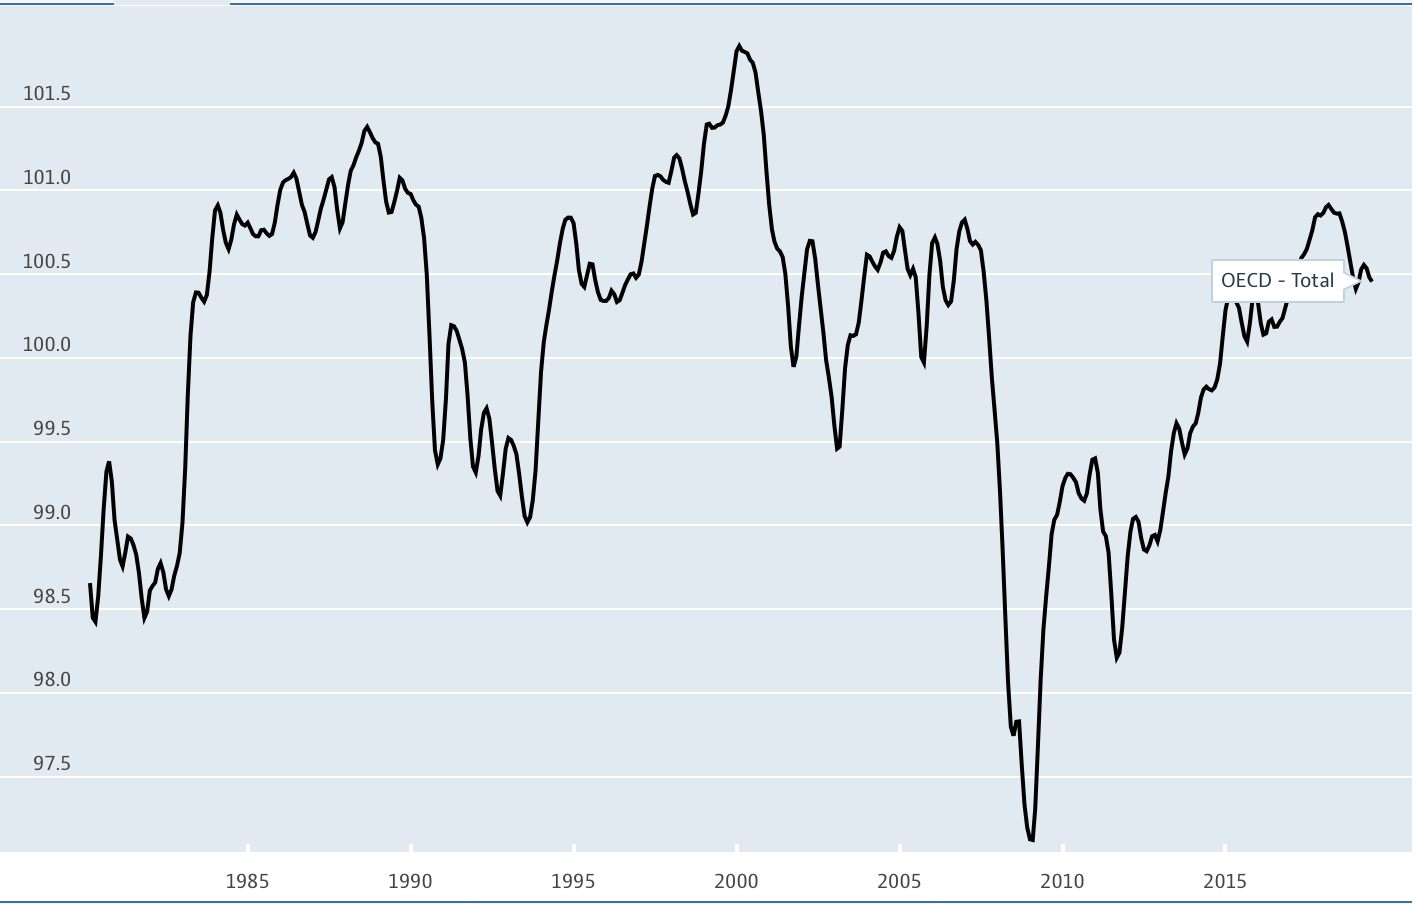 Oh Yes! The Recession Is Coming - S&P 500 Index (:SP500